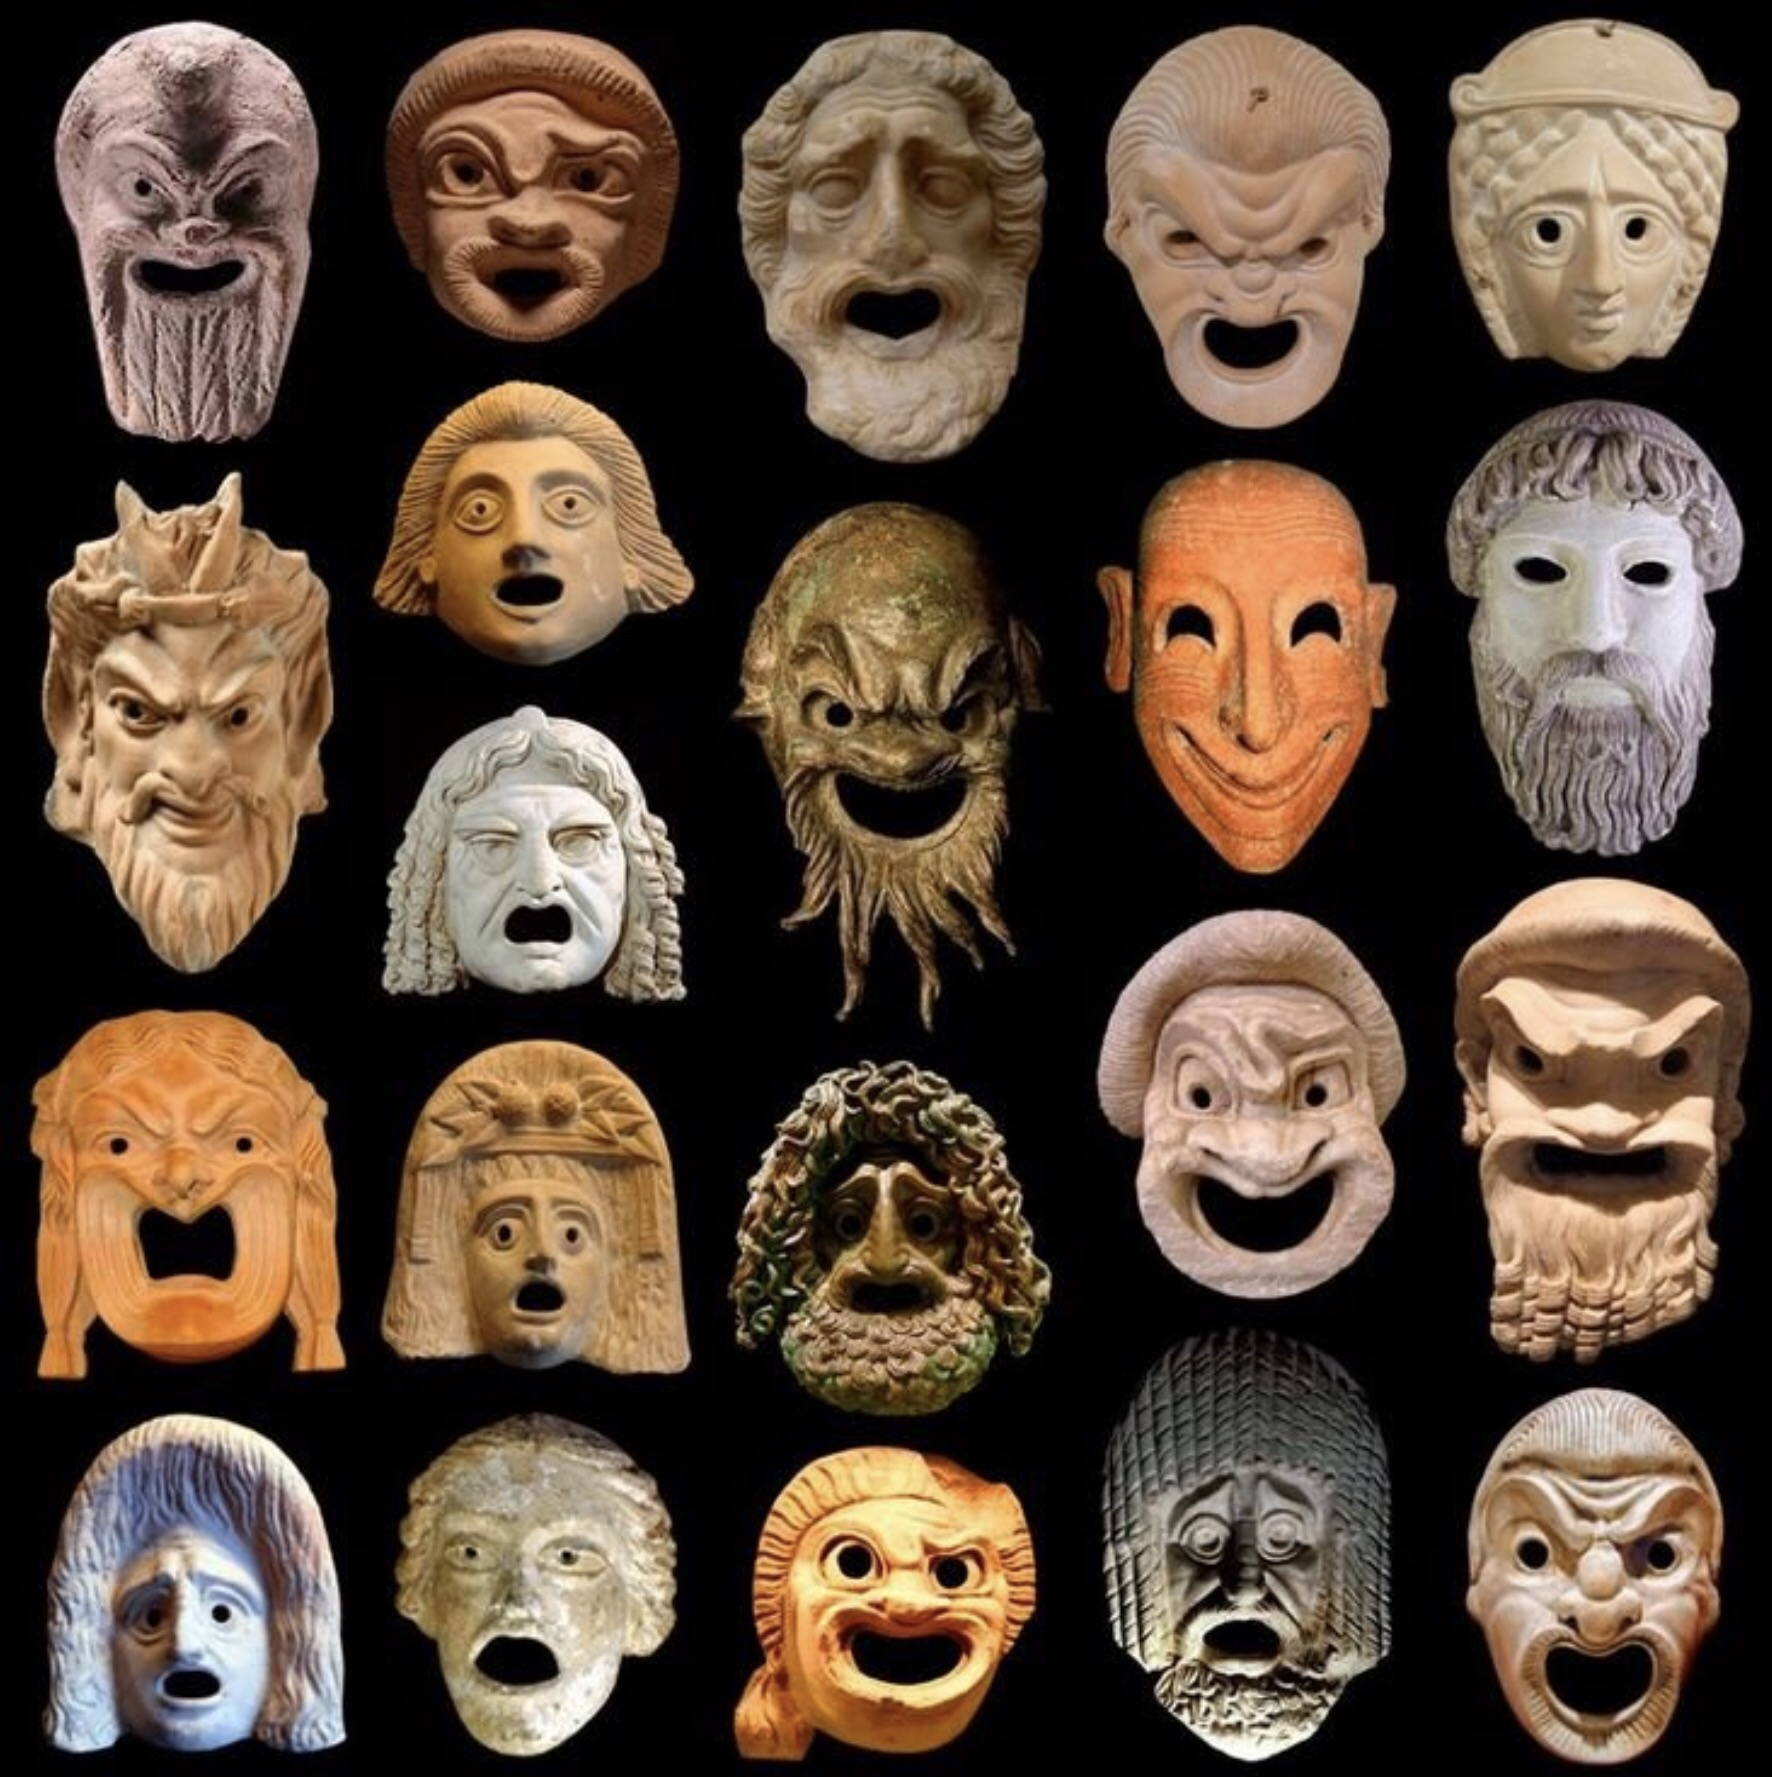 Onkos Greek Theatre Masks. The originals were made of linen, these are stone representations.